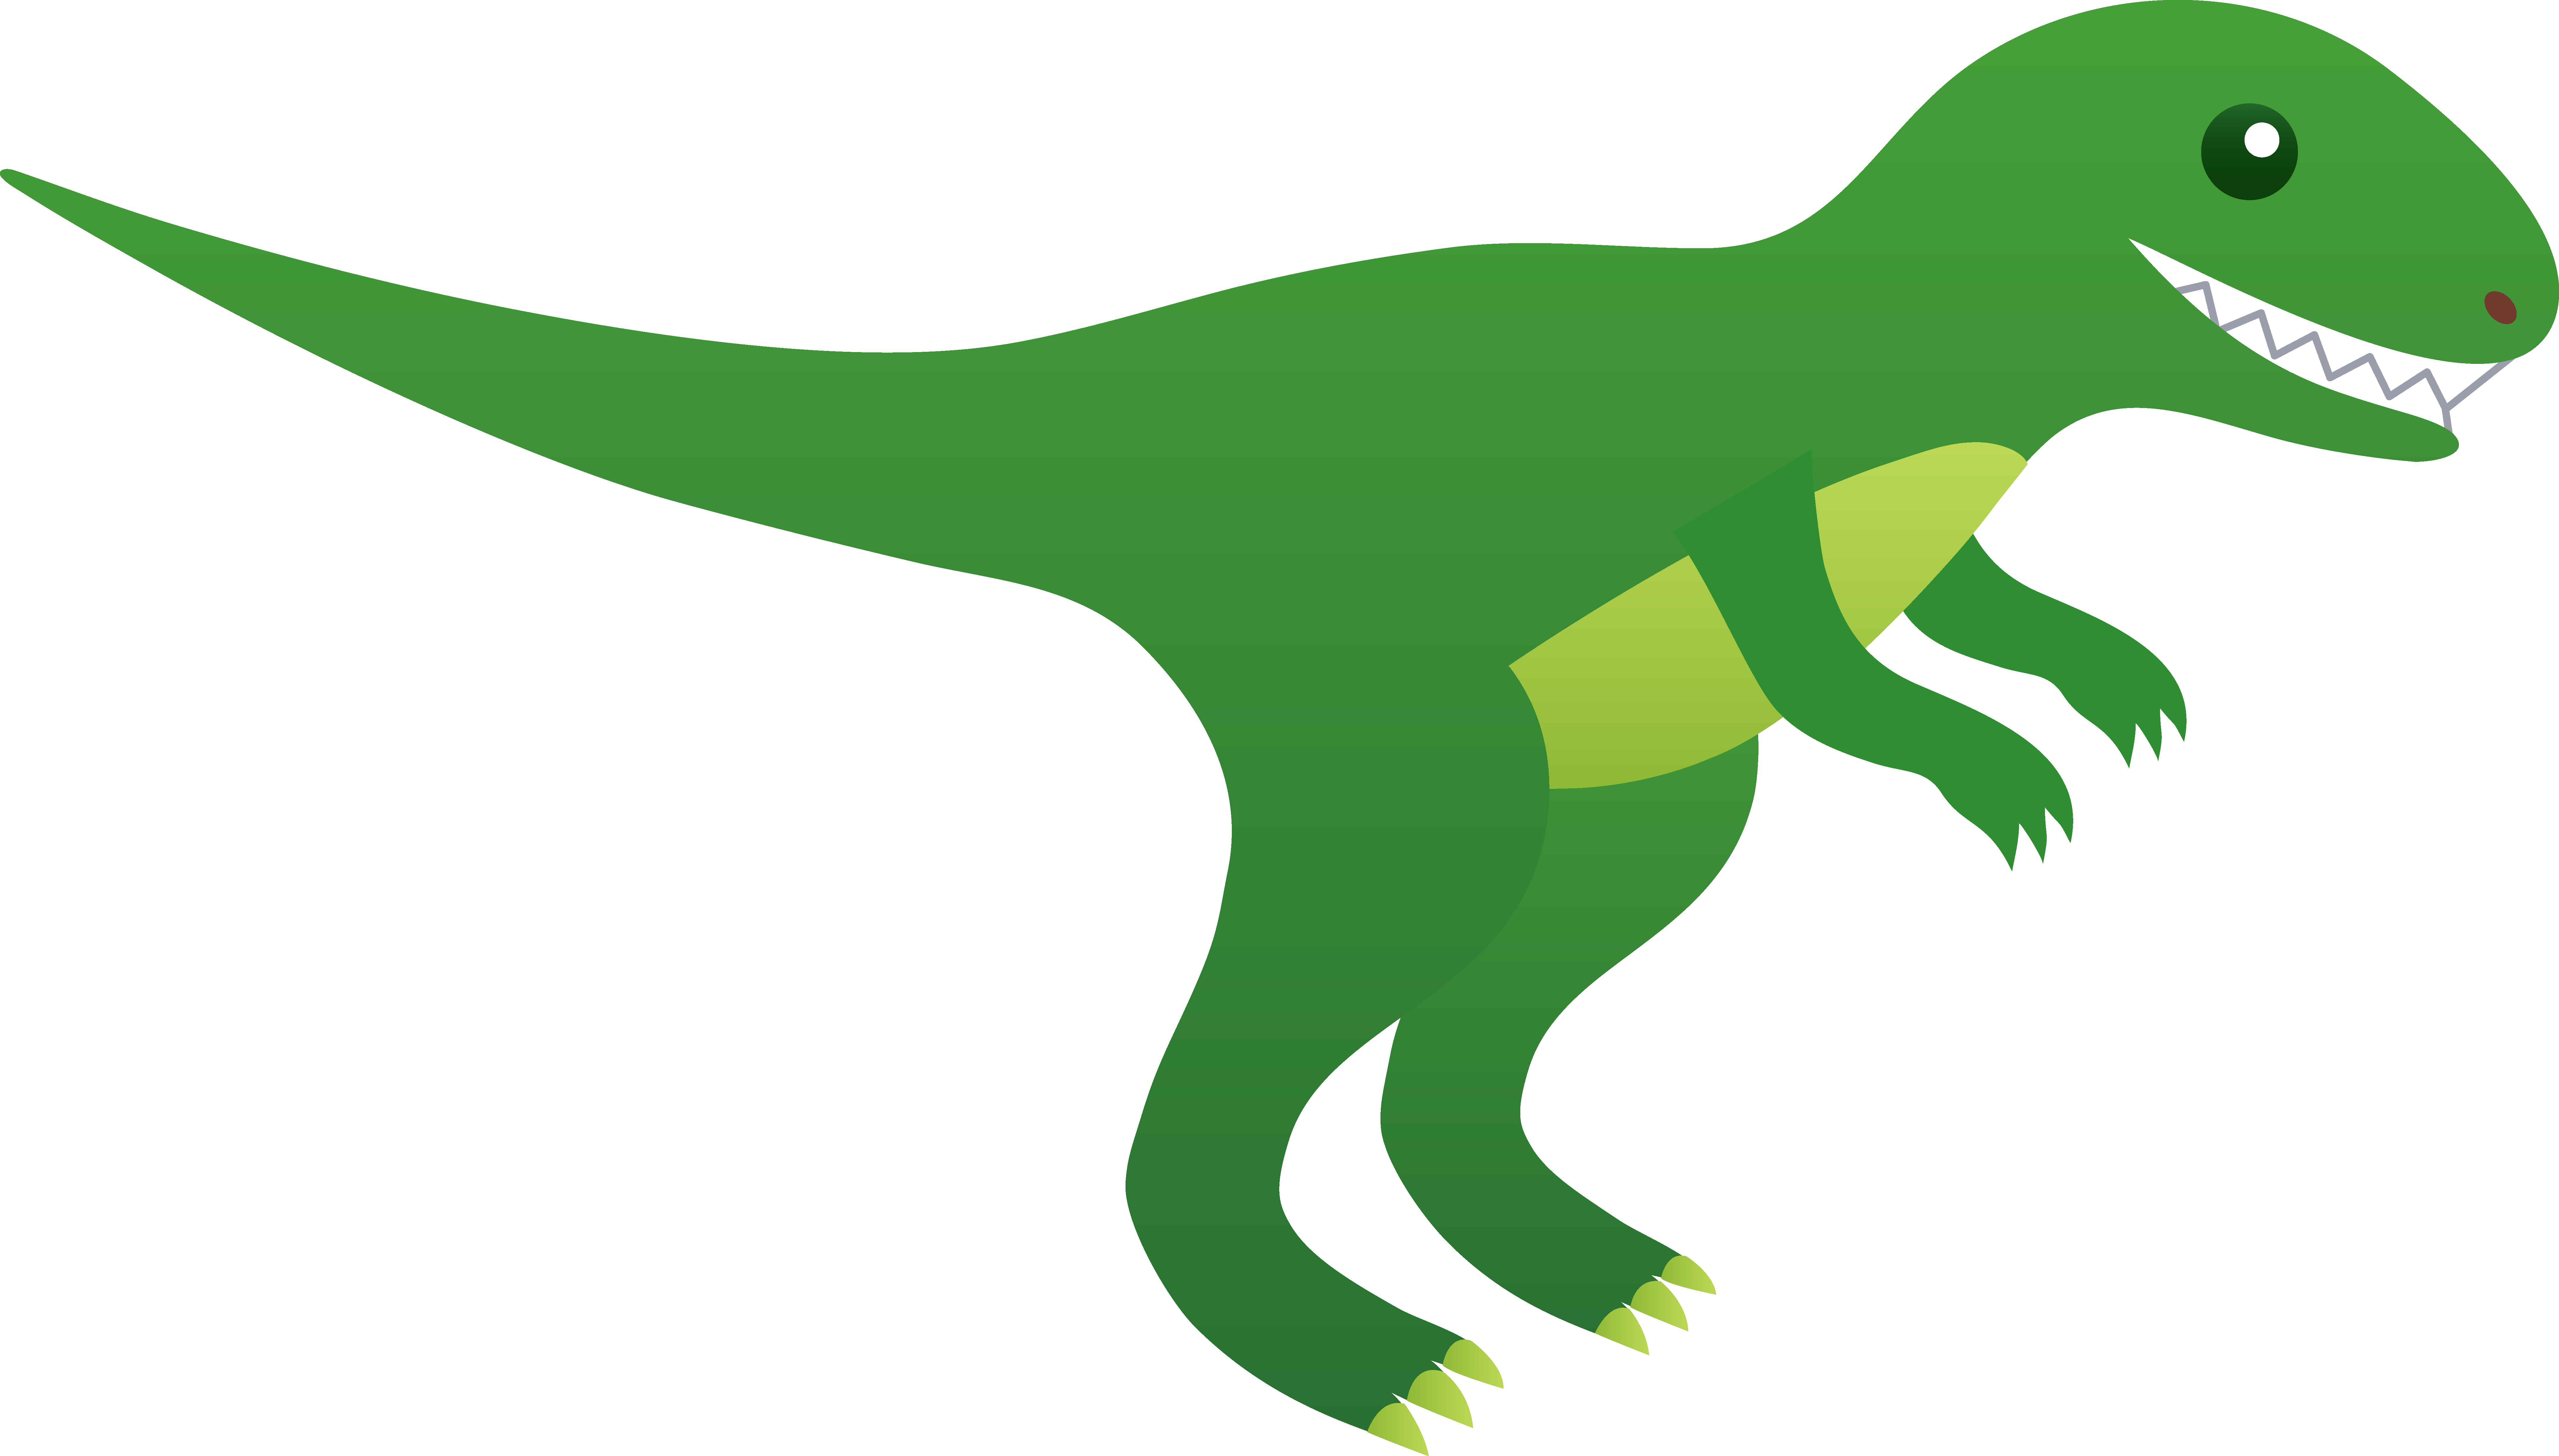 trex png avatar